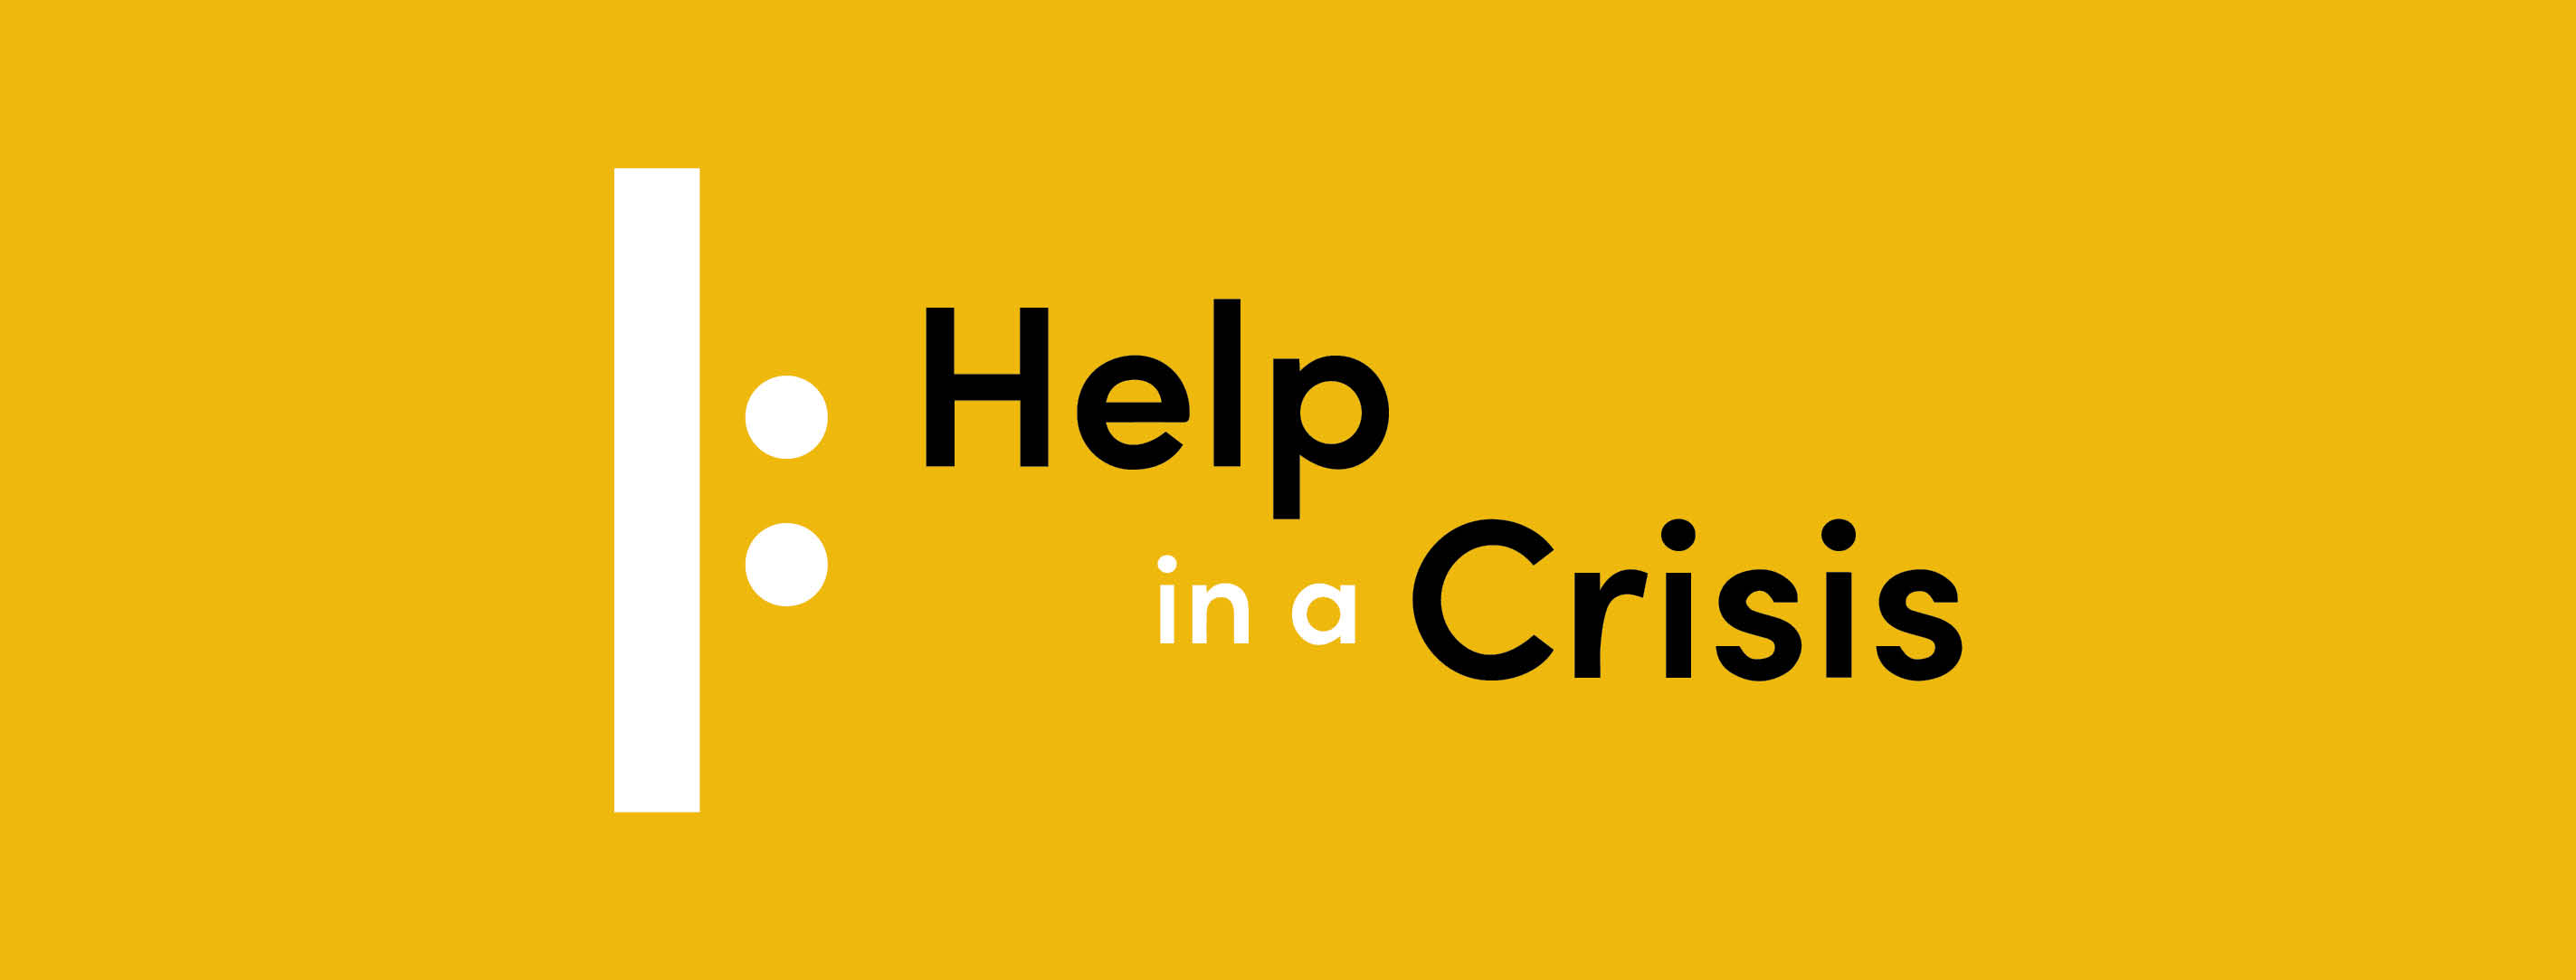 Health & Welfare - Help in a Crisis